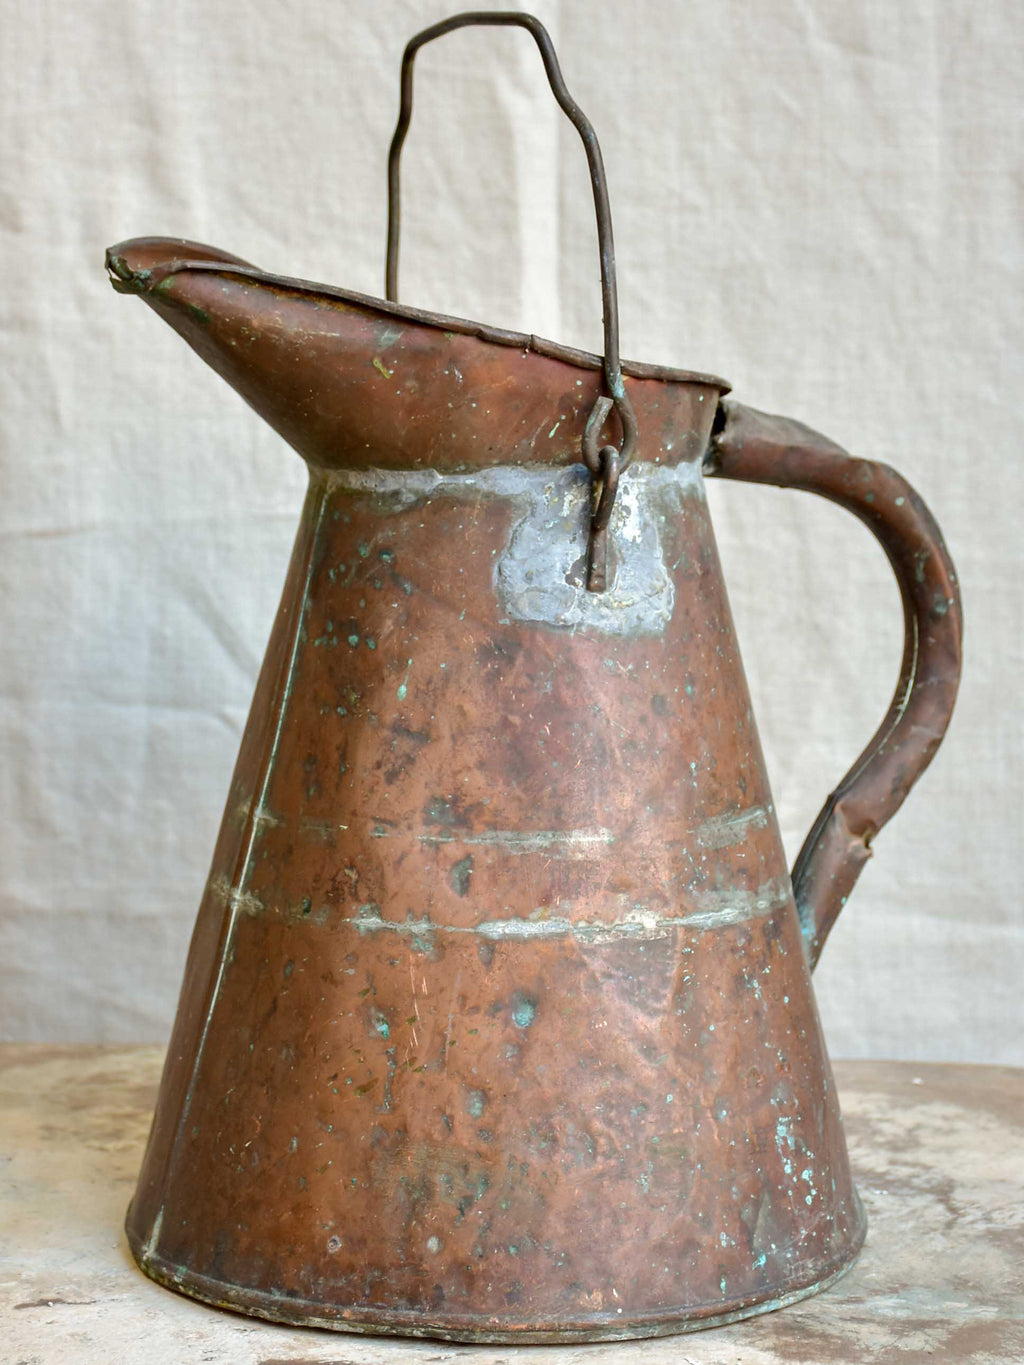 Rustic antique French copper watering can